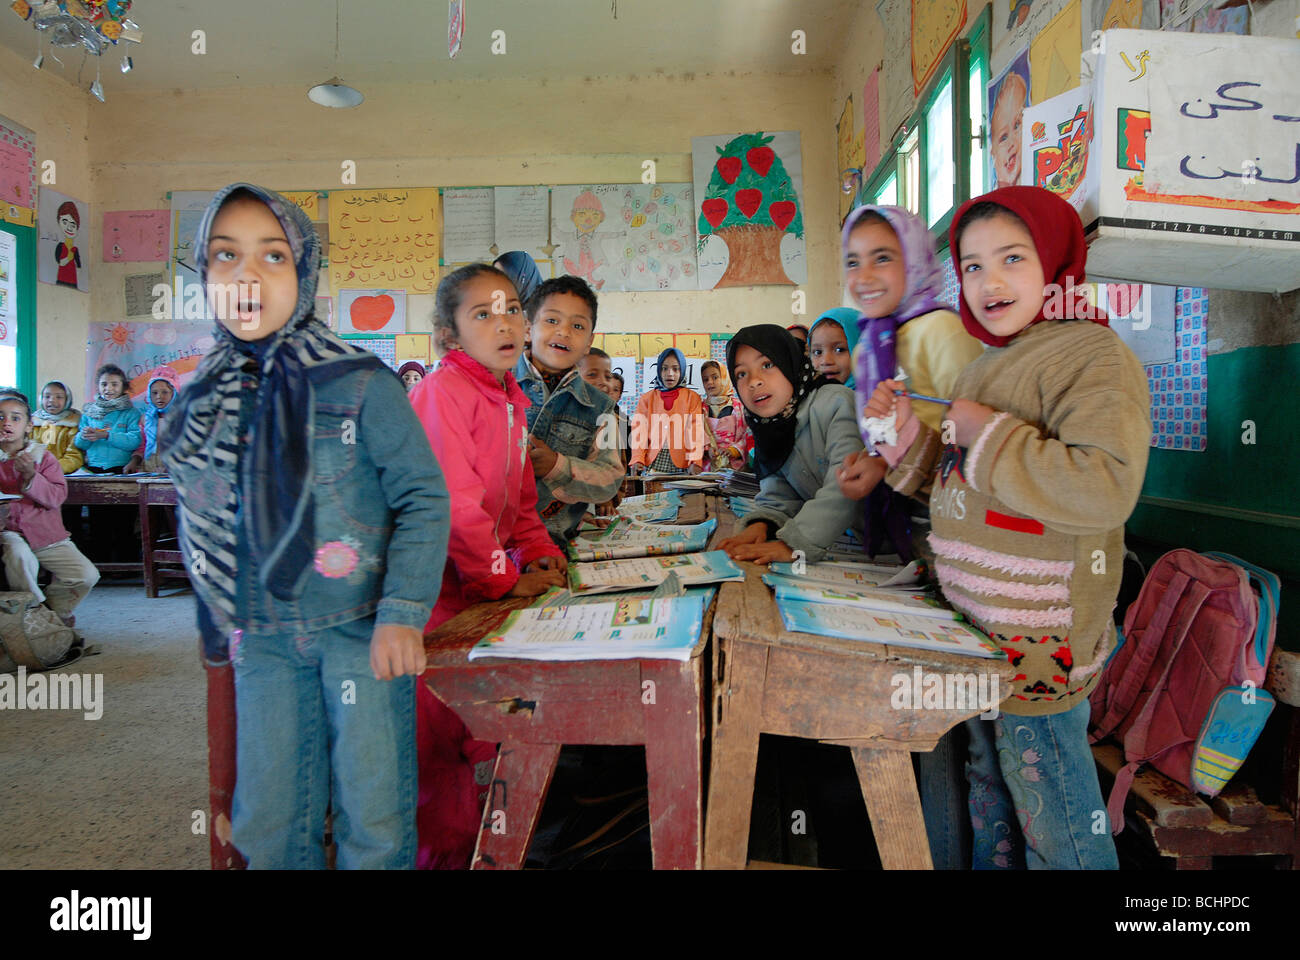 A Crowded Classroom At An Elementary School In Sohag In